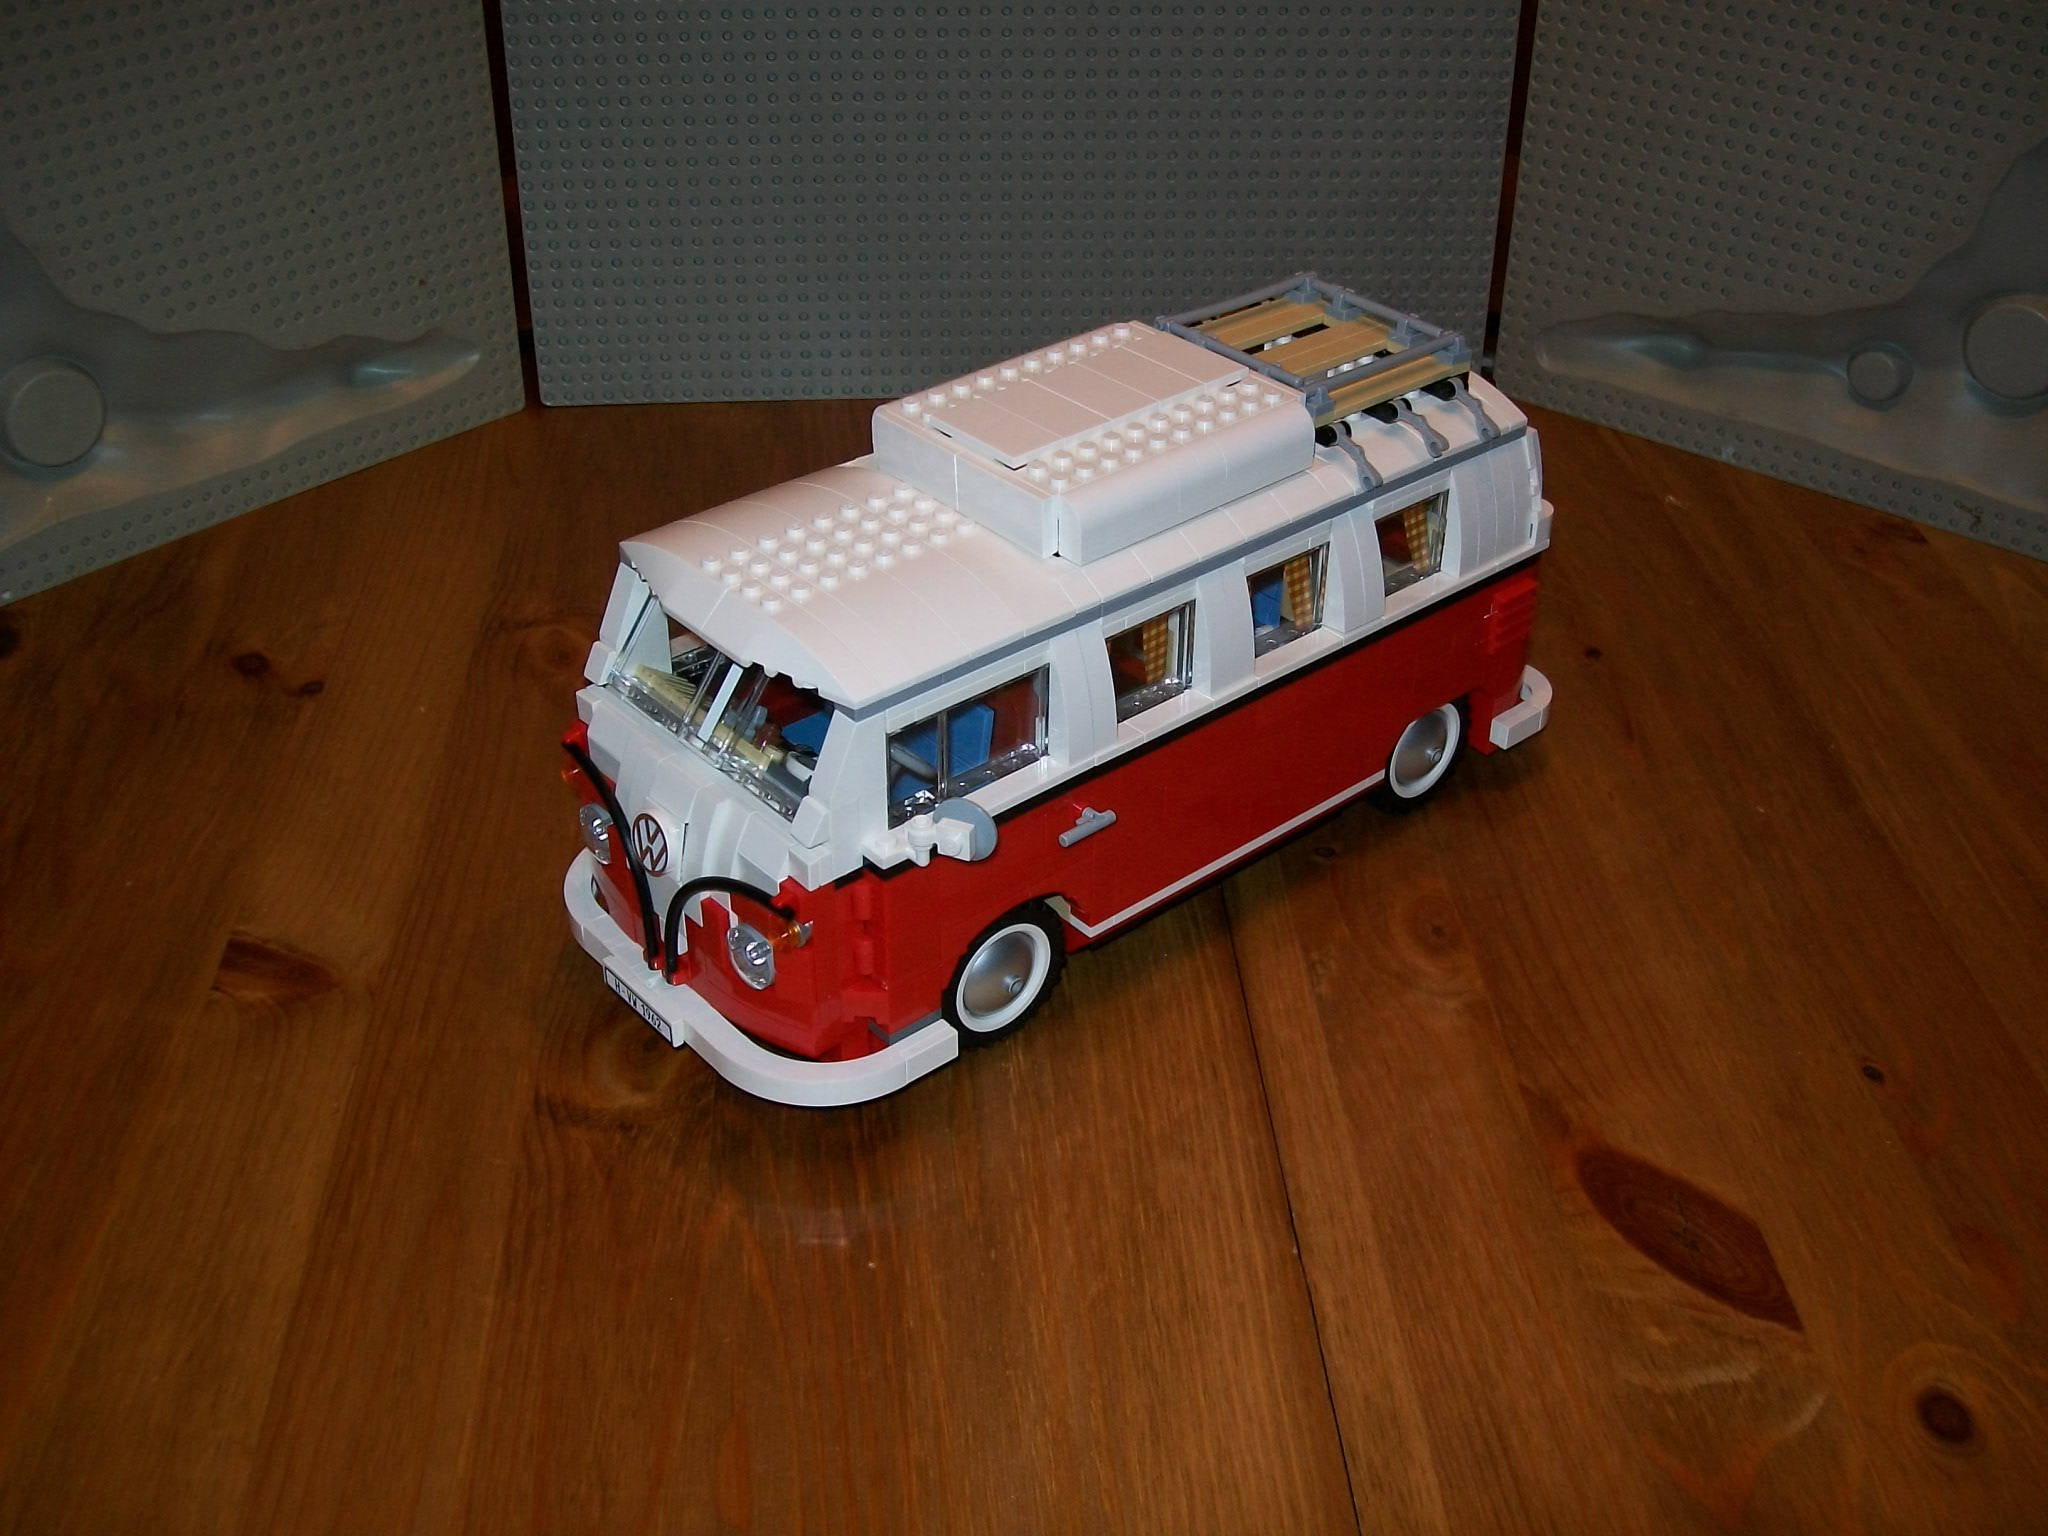 lego 10220 le camping car volkswagen t1 partie 2 lego r by alkinoos. Black Bedroom Furniture Sets. Home Design Ideas